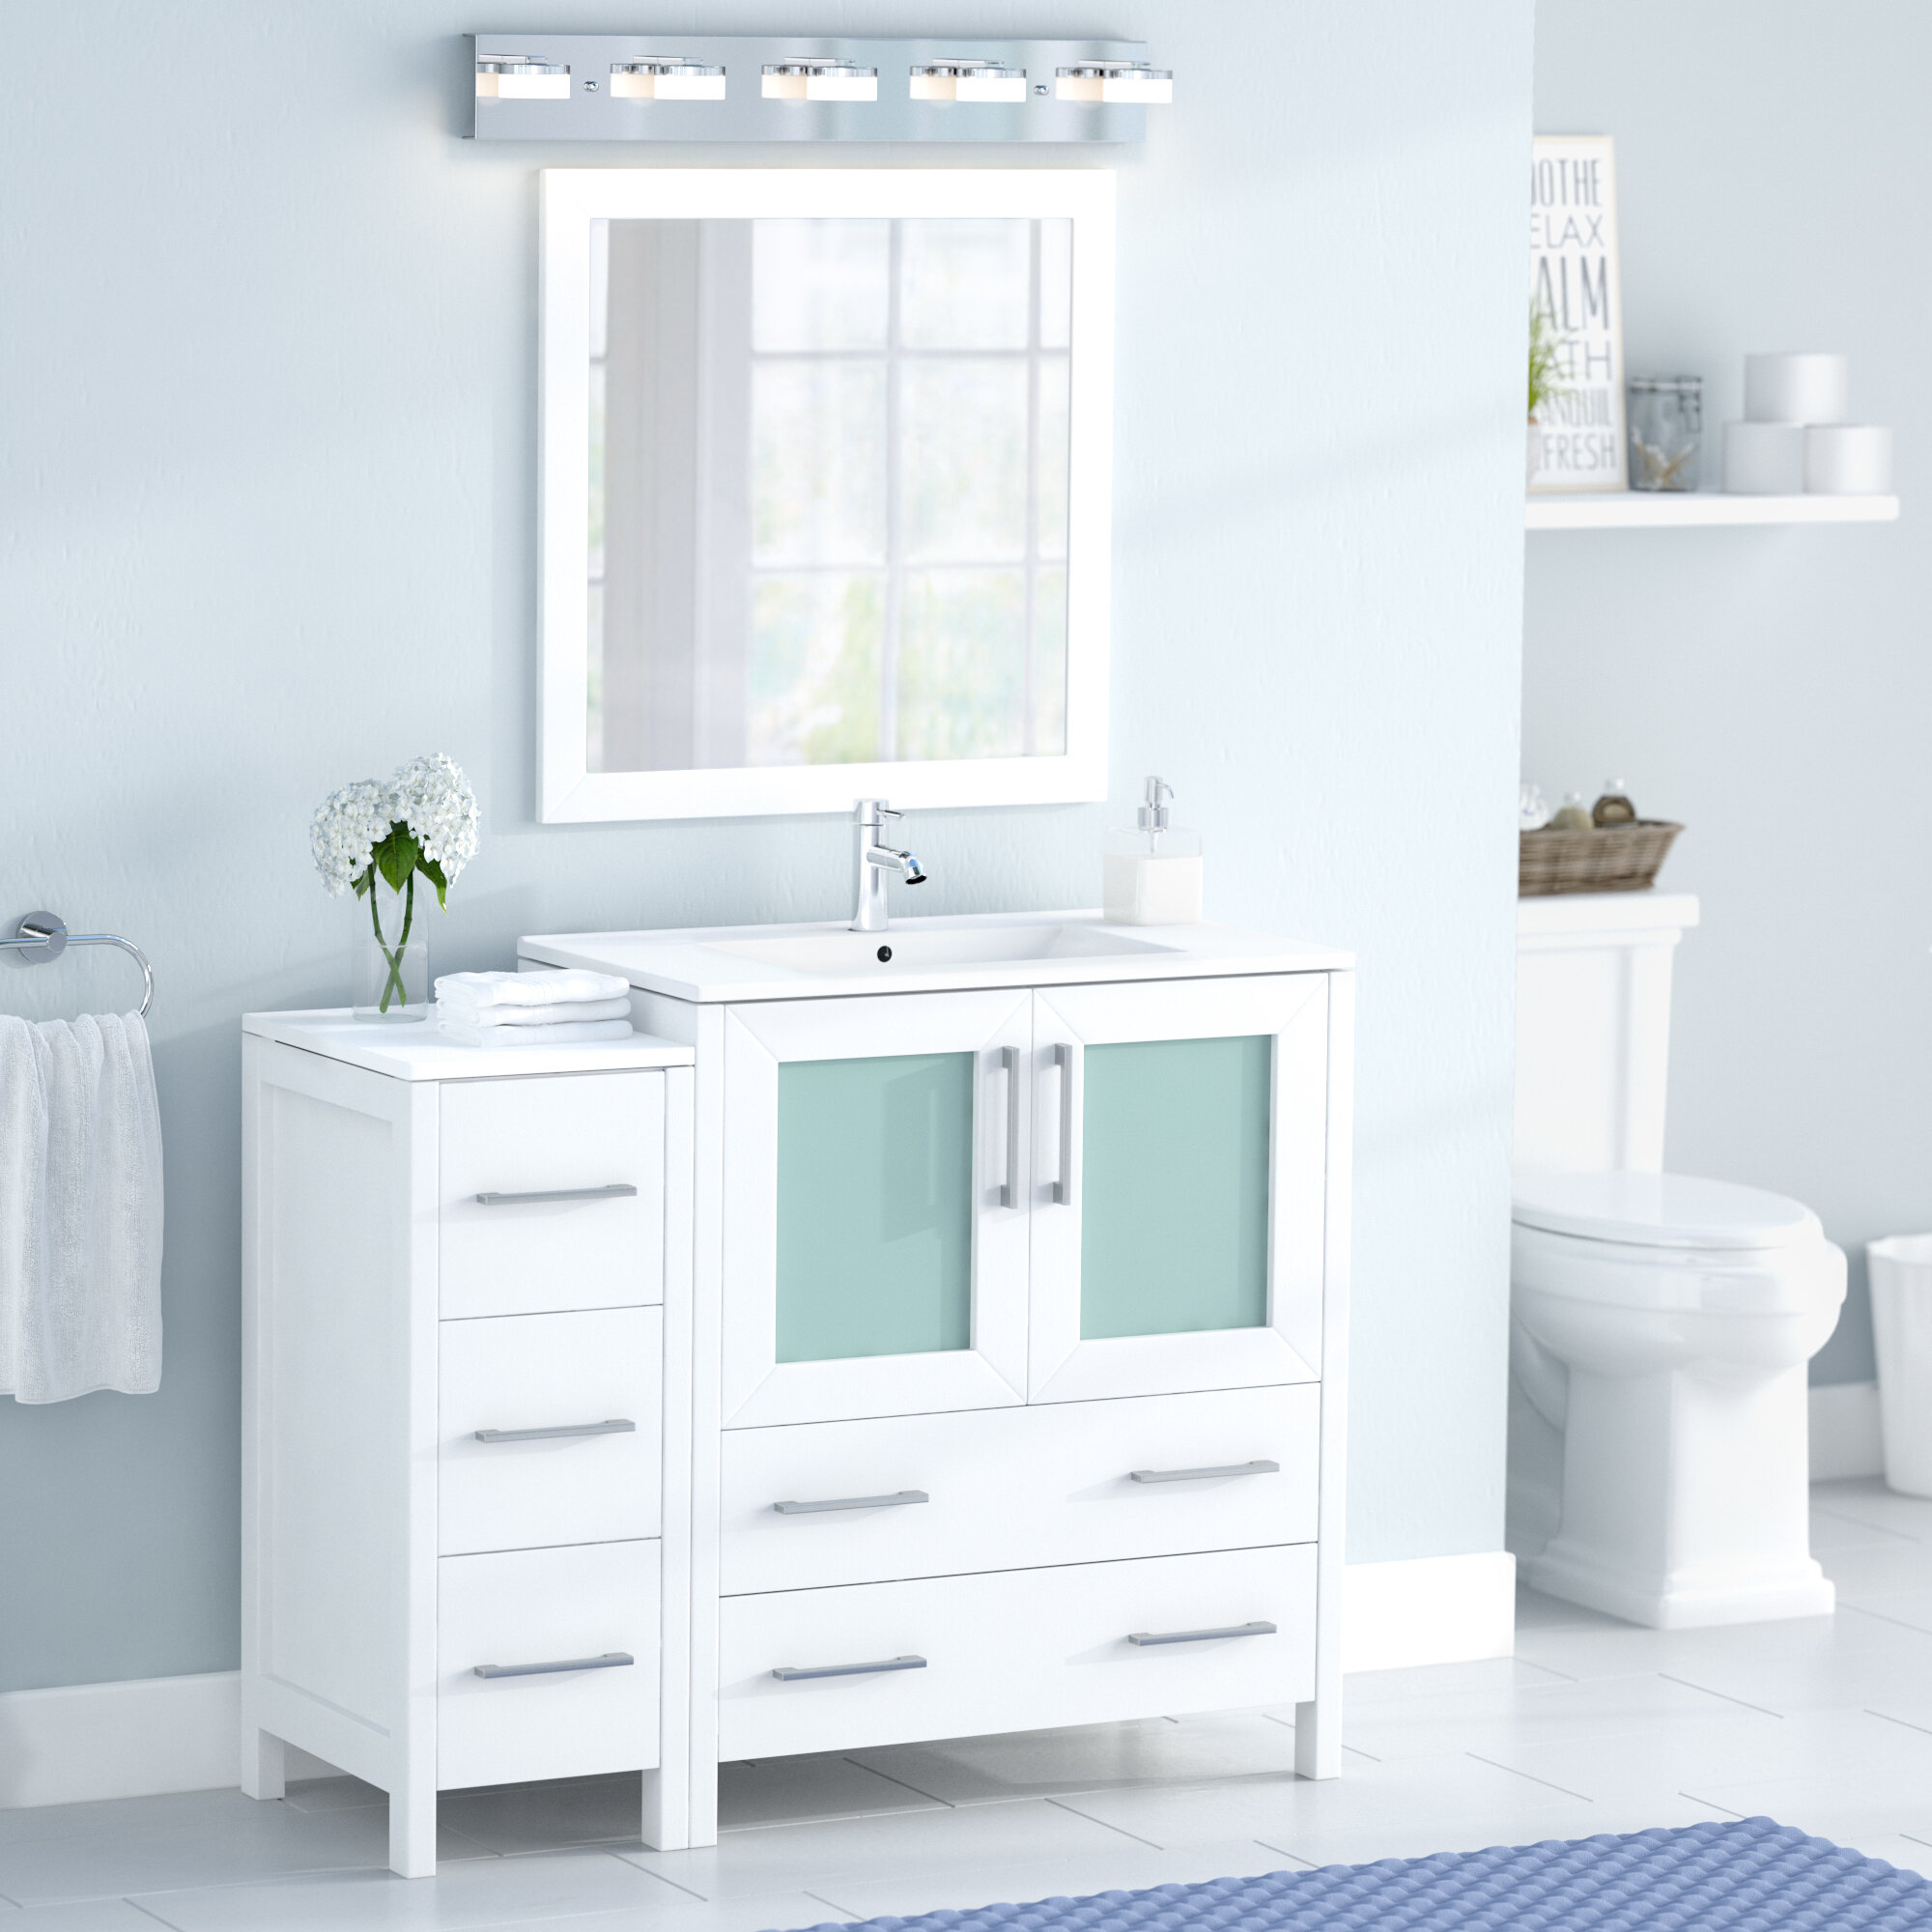 beautiful with cabinet inch top vanity sink inches cabinets bathroom